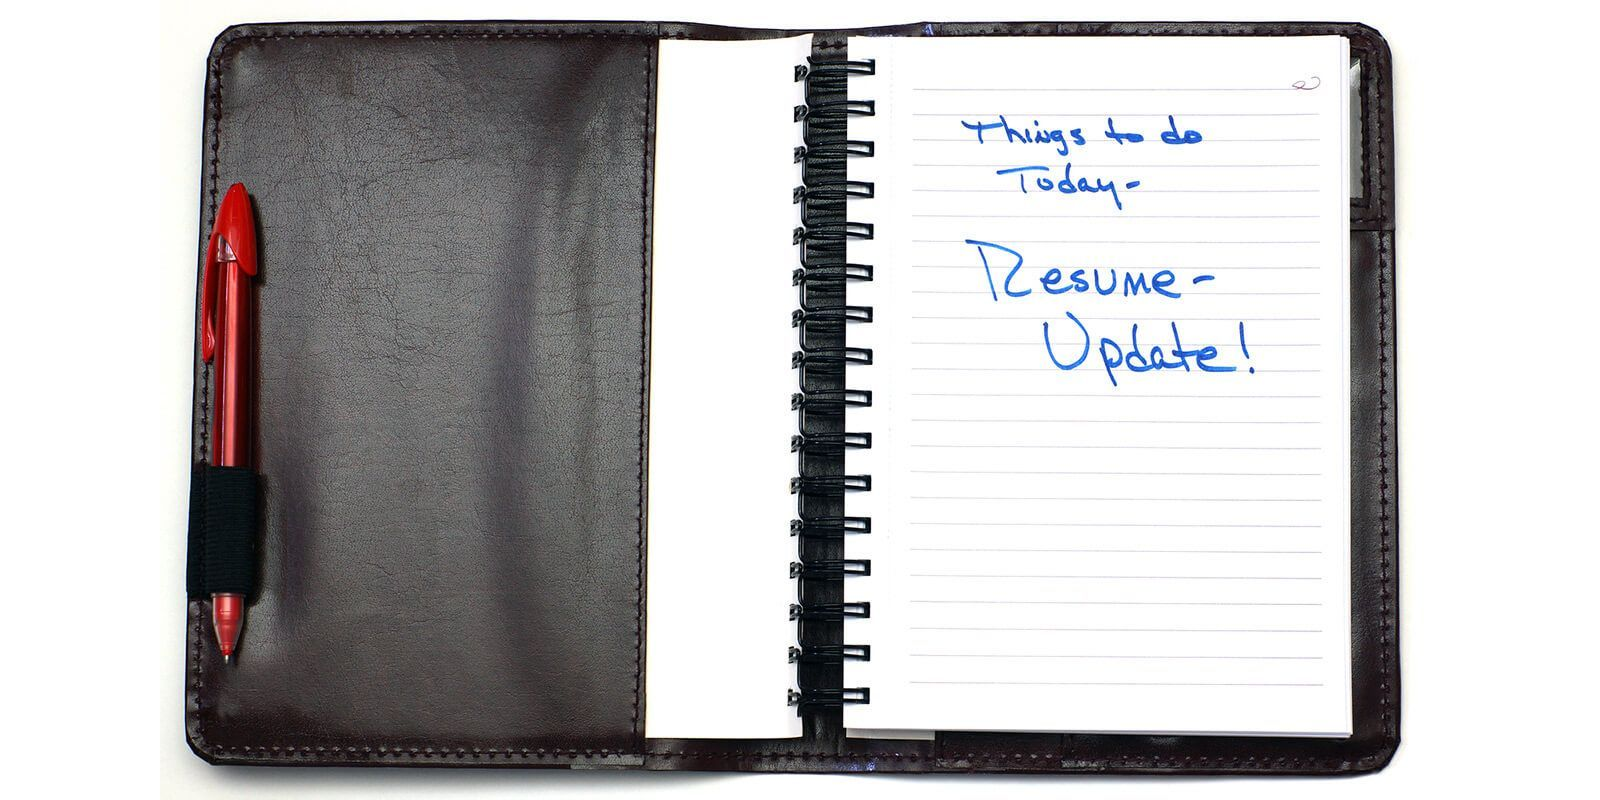 8 Simple Resume Updates to Make If You're Planning to Go